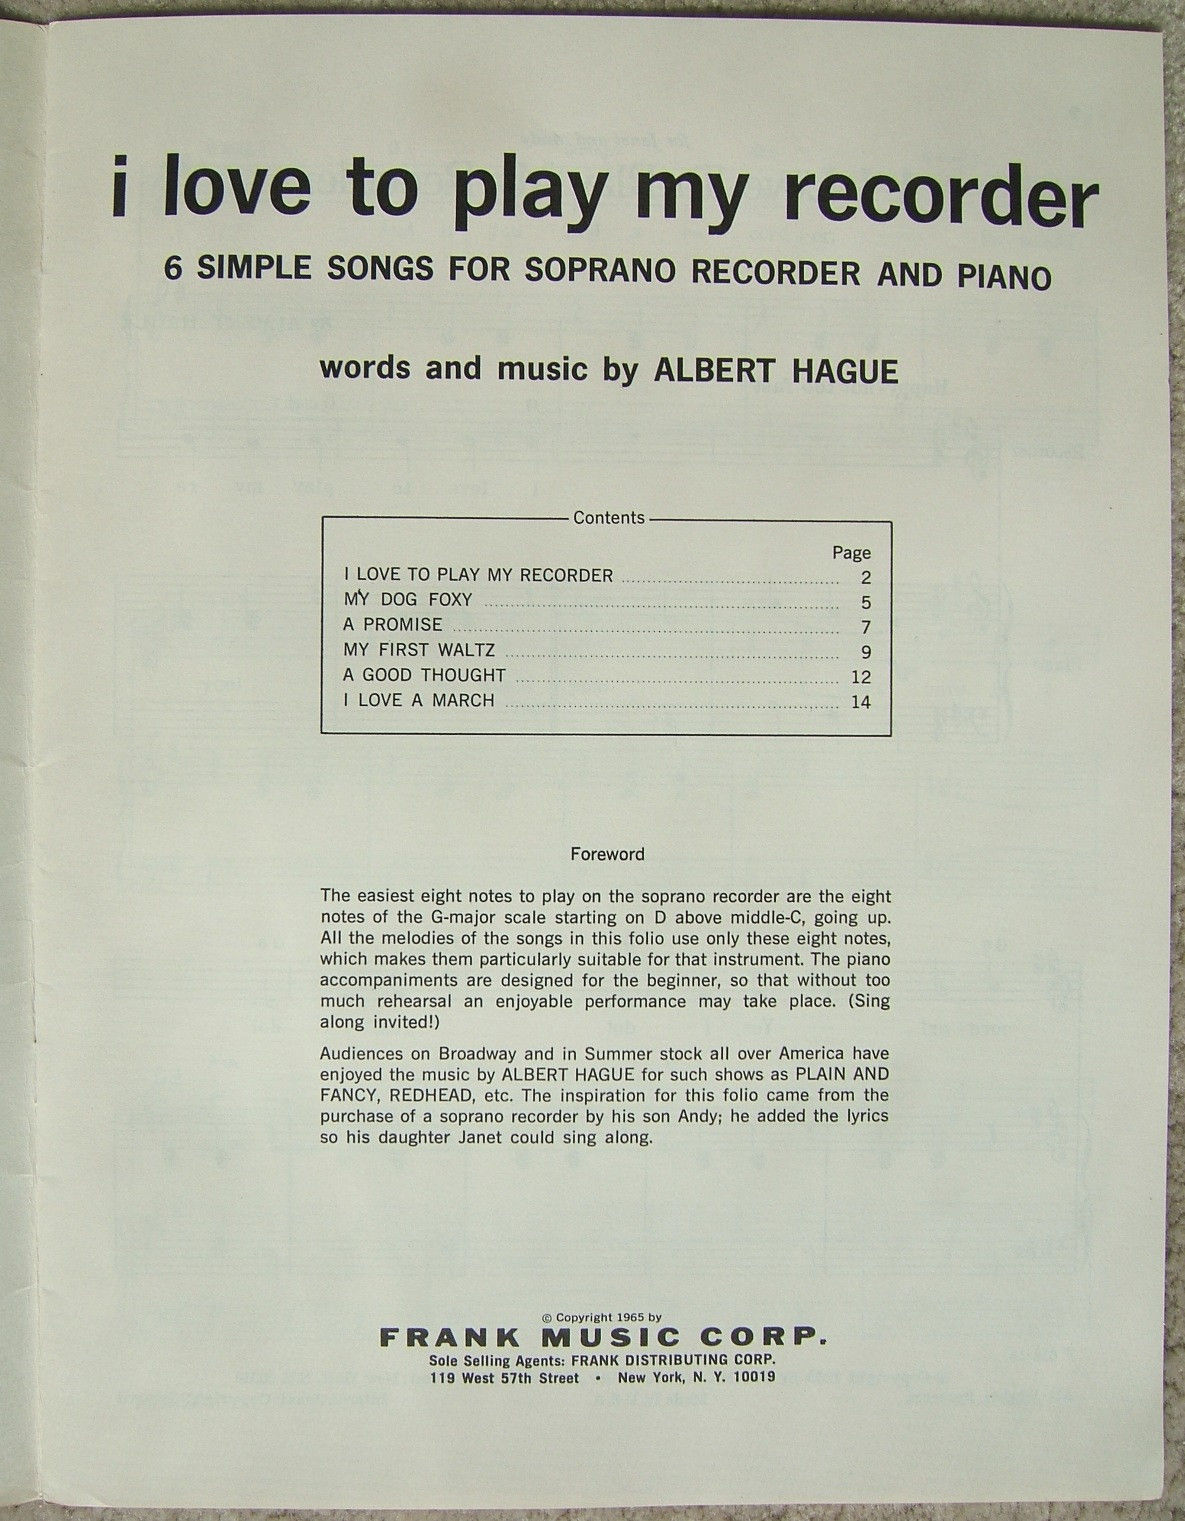 Vintage Soprano Recorder  I Love To Play My Recorder Music Book Booklet 1965 image 2